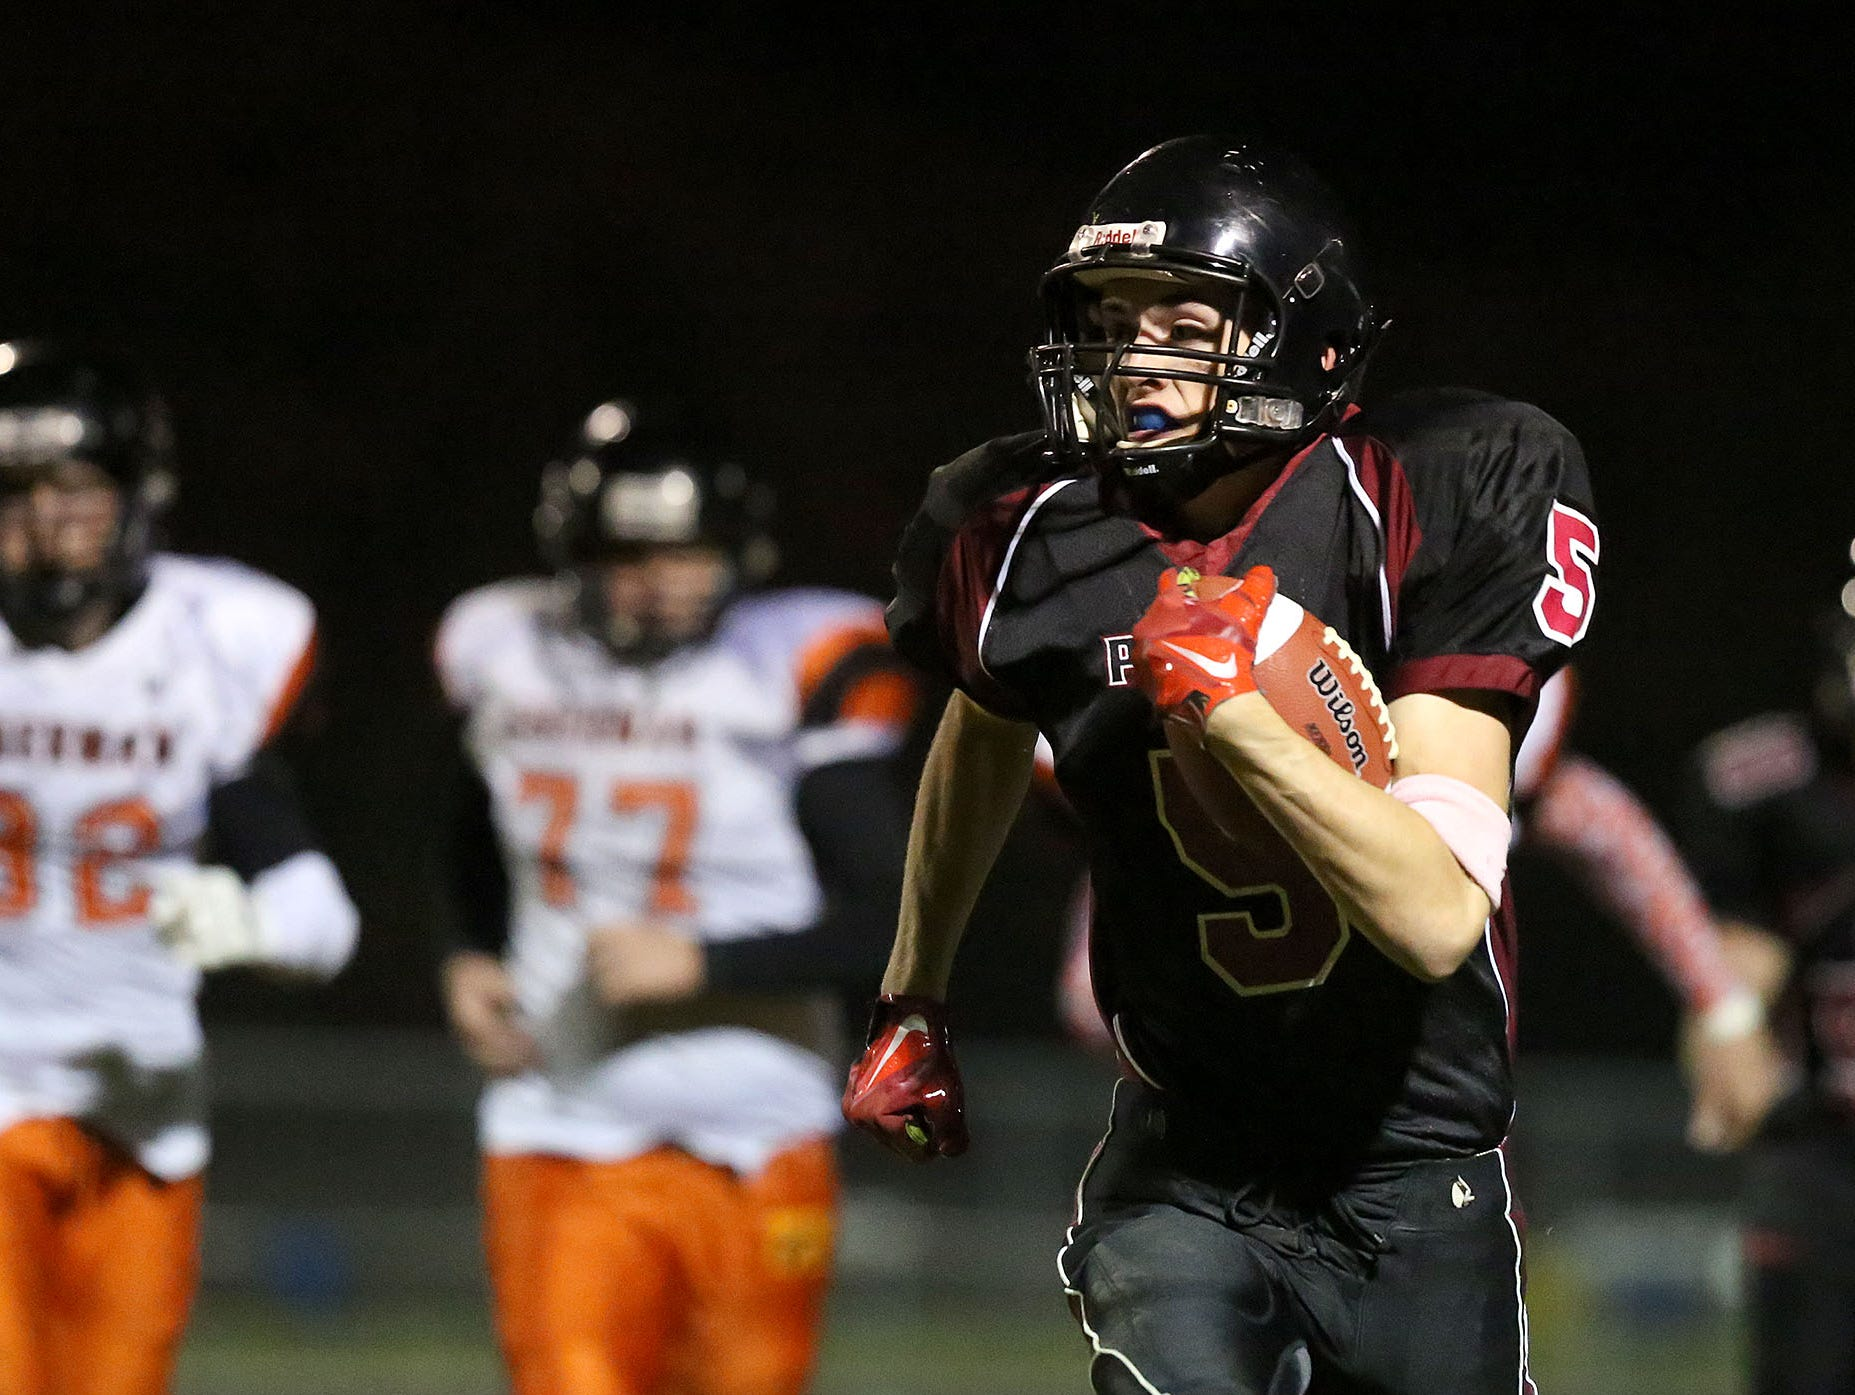 Perrydale running back Haylen Janesofsky (5) runs for a touchdown during their game on Friday, Oct. 23, 2015, in Perrydale, Ore.